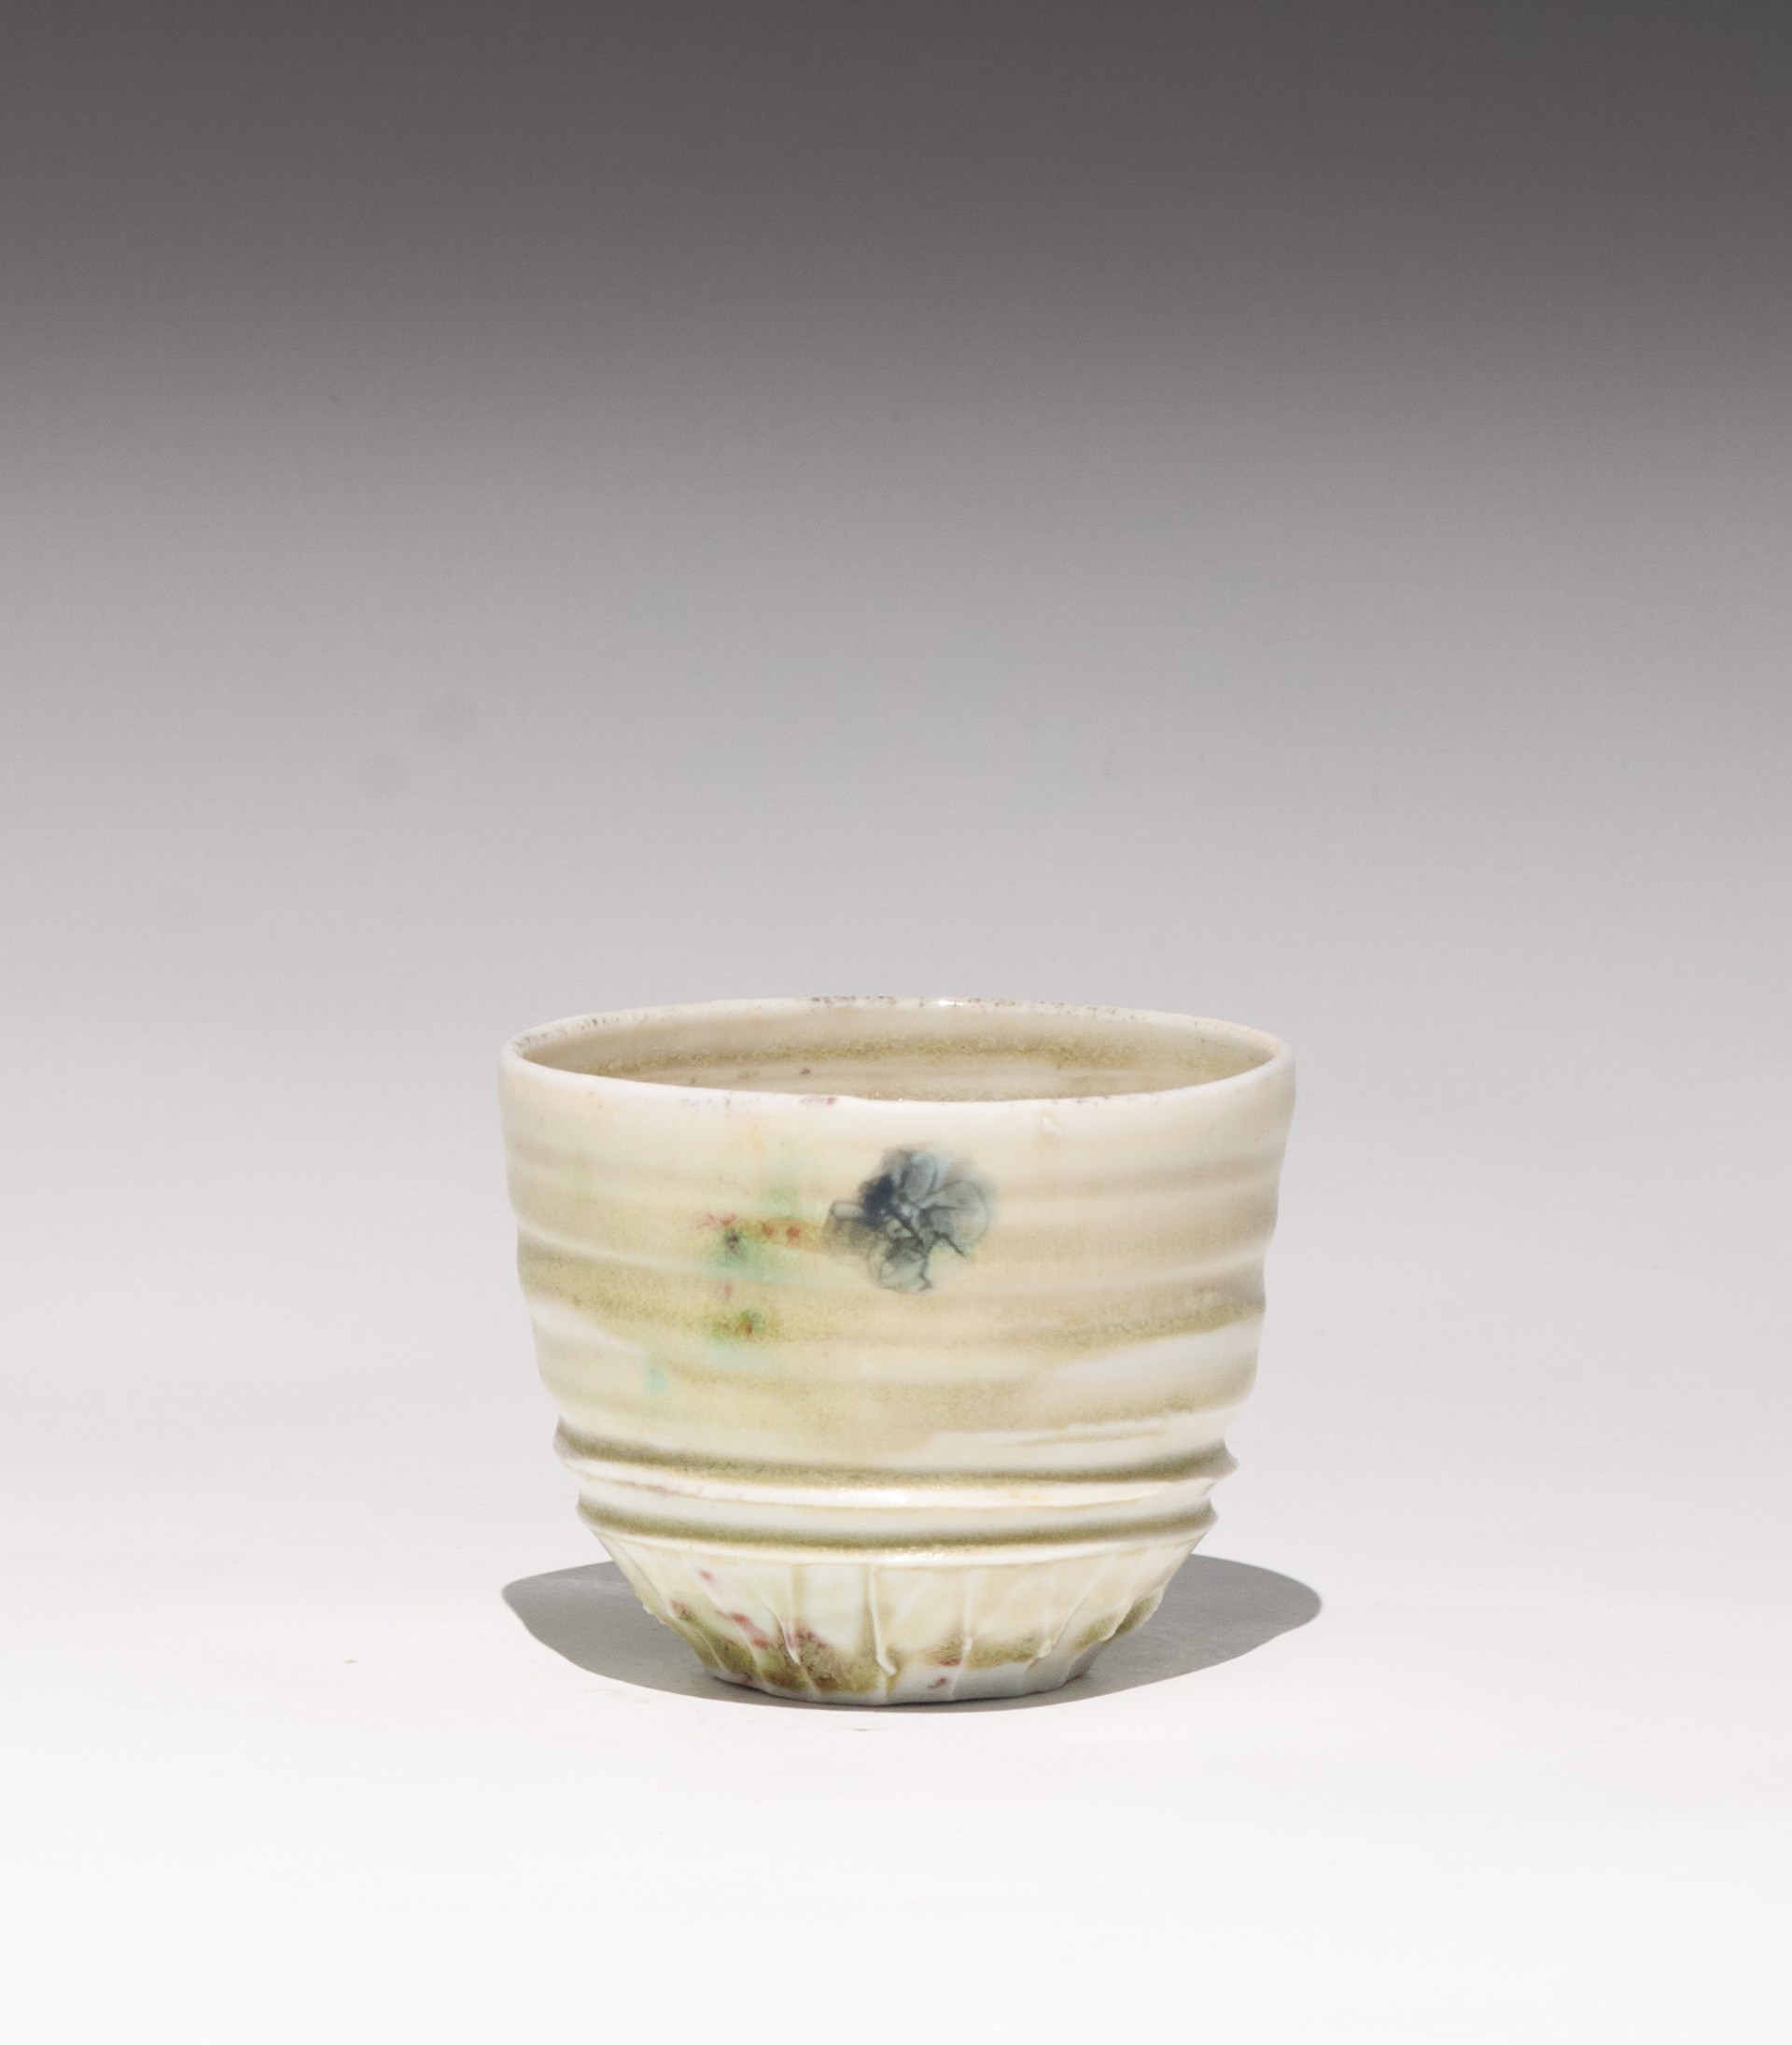 Insect Tea Bowl 3 by Caroline Bottom Anderson